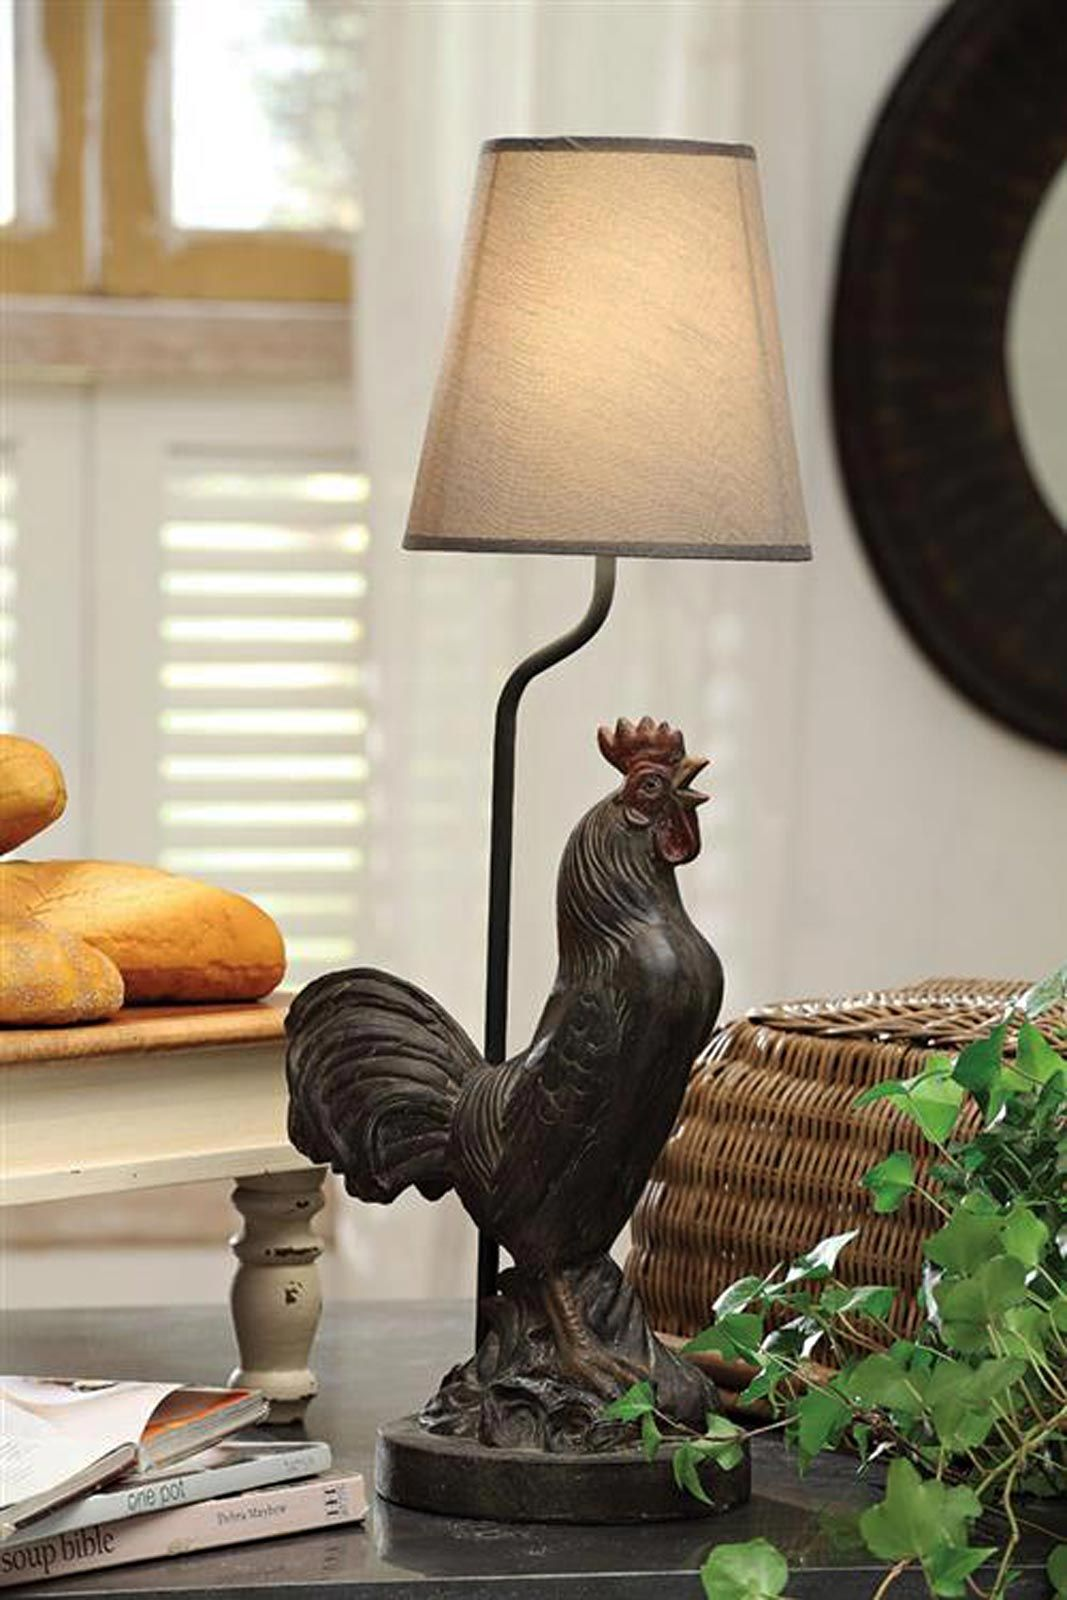 Farmhouse Decor Vintage Rooster Lamp Atlantic Mold 3 Way Etsy Farmhouse Decor Ceramic Rooster Rooster